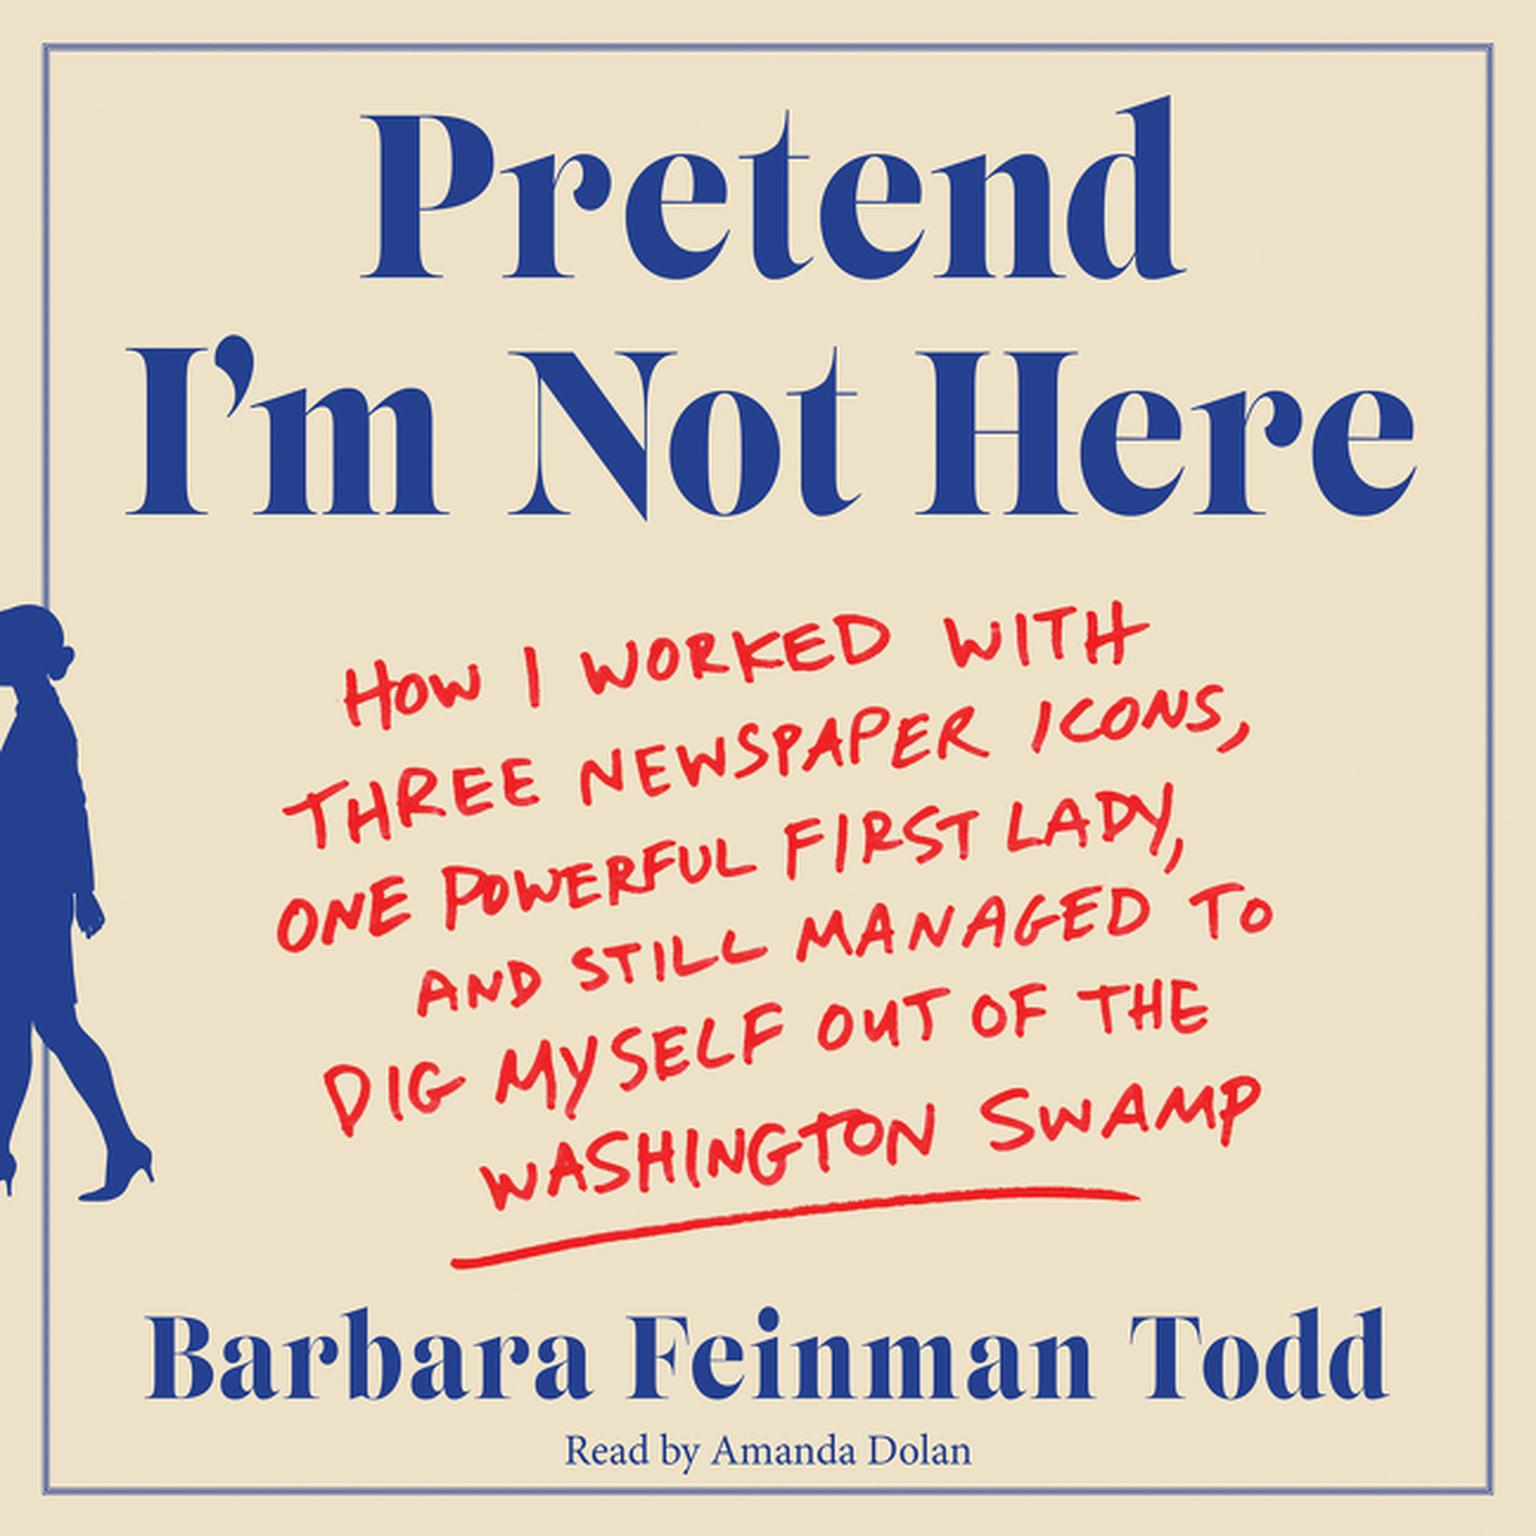 Printable Pretend I'm Not Here: How I Worked with Three Newspaper Icons, One Powerful First Lady, and Still Managed to Dig Myself Out of the Washington Swamp Audiobook Cover Art